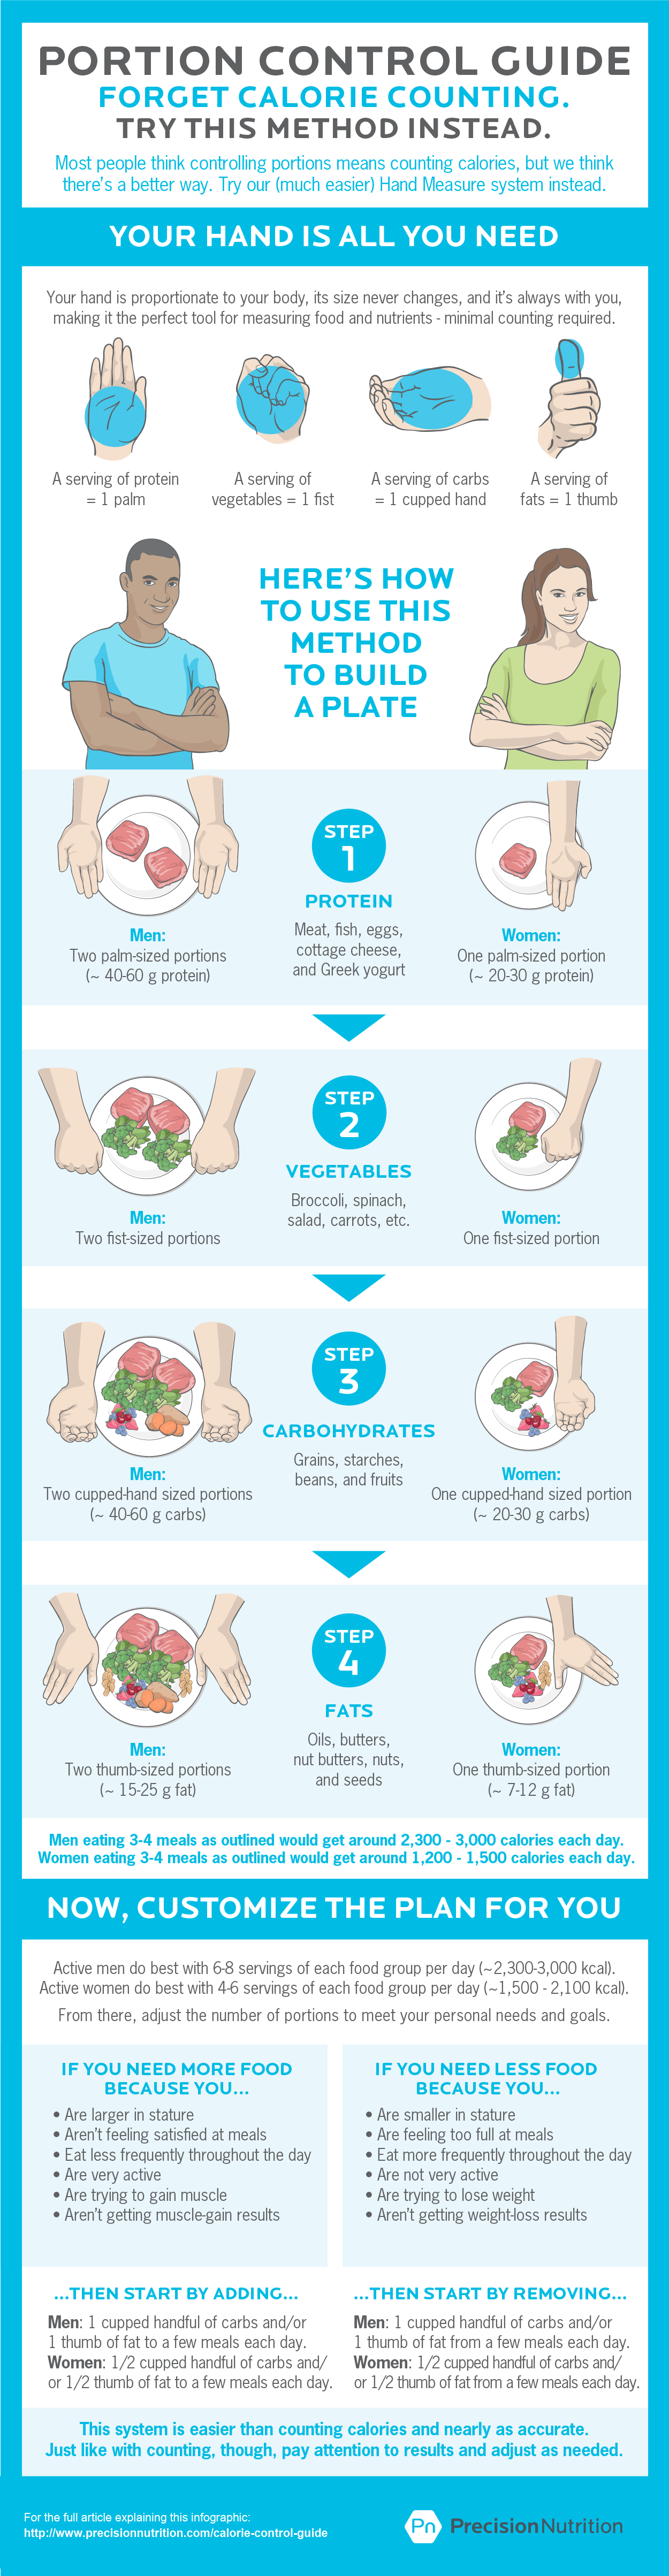 calorie-control-guide-for-women-image